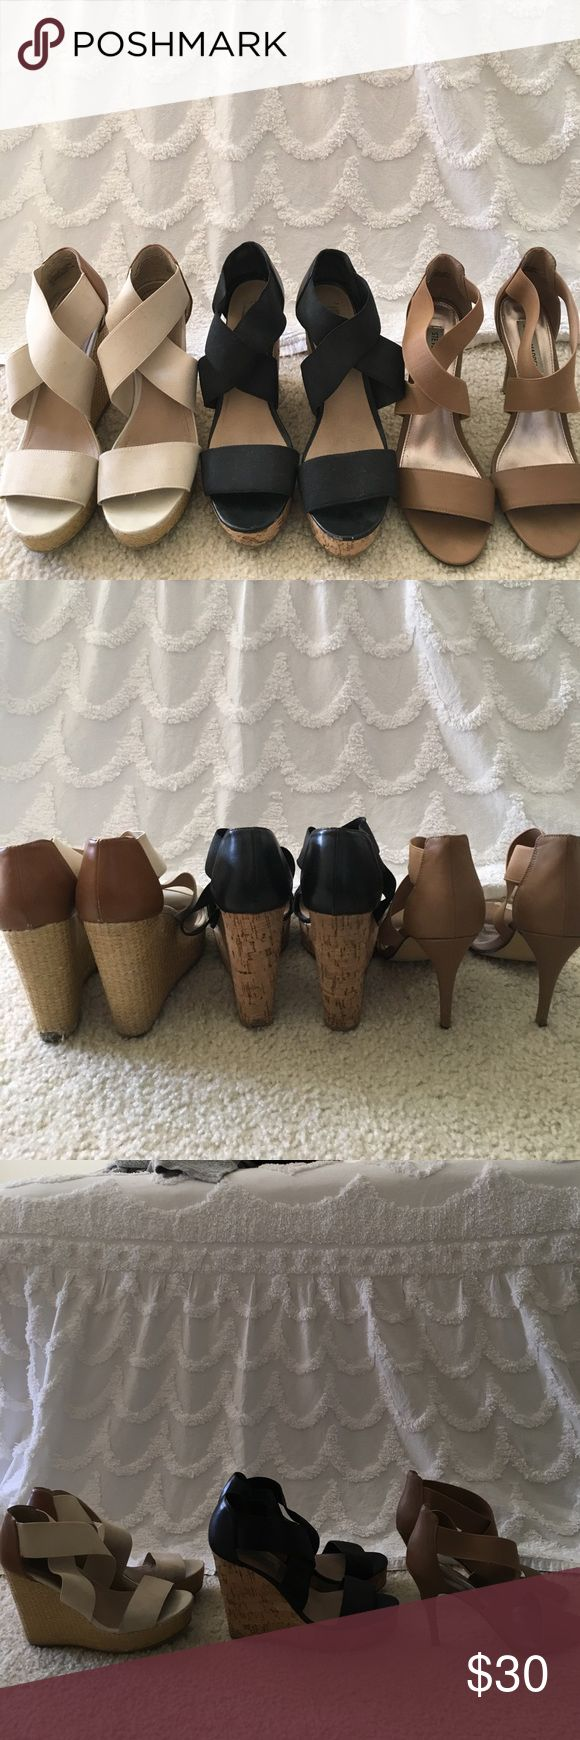 Steve Madden Shoe Sale! All are Steve Madden size 8.5. Please comment which shoe pair you're interested in buying & I will create an individual listing for you! Or, buy all 3 for just $30! Pairs are $15 each. Thanks! Steve Madden Shoes Wedges